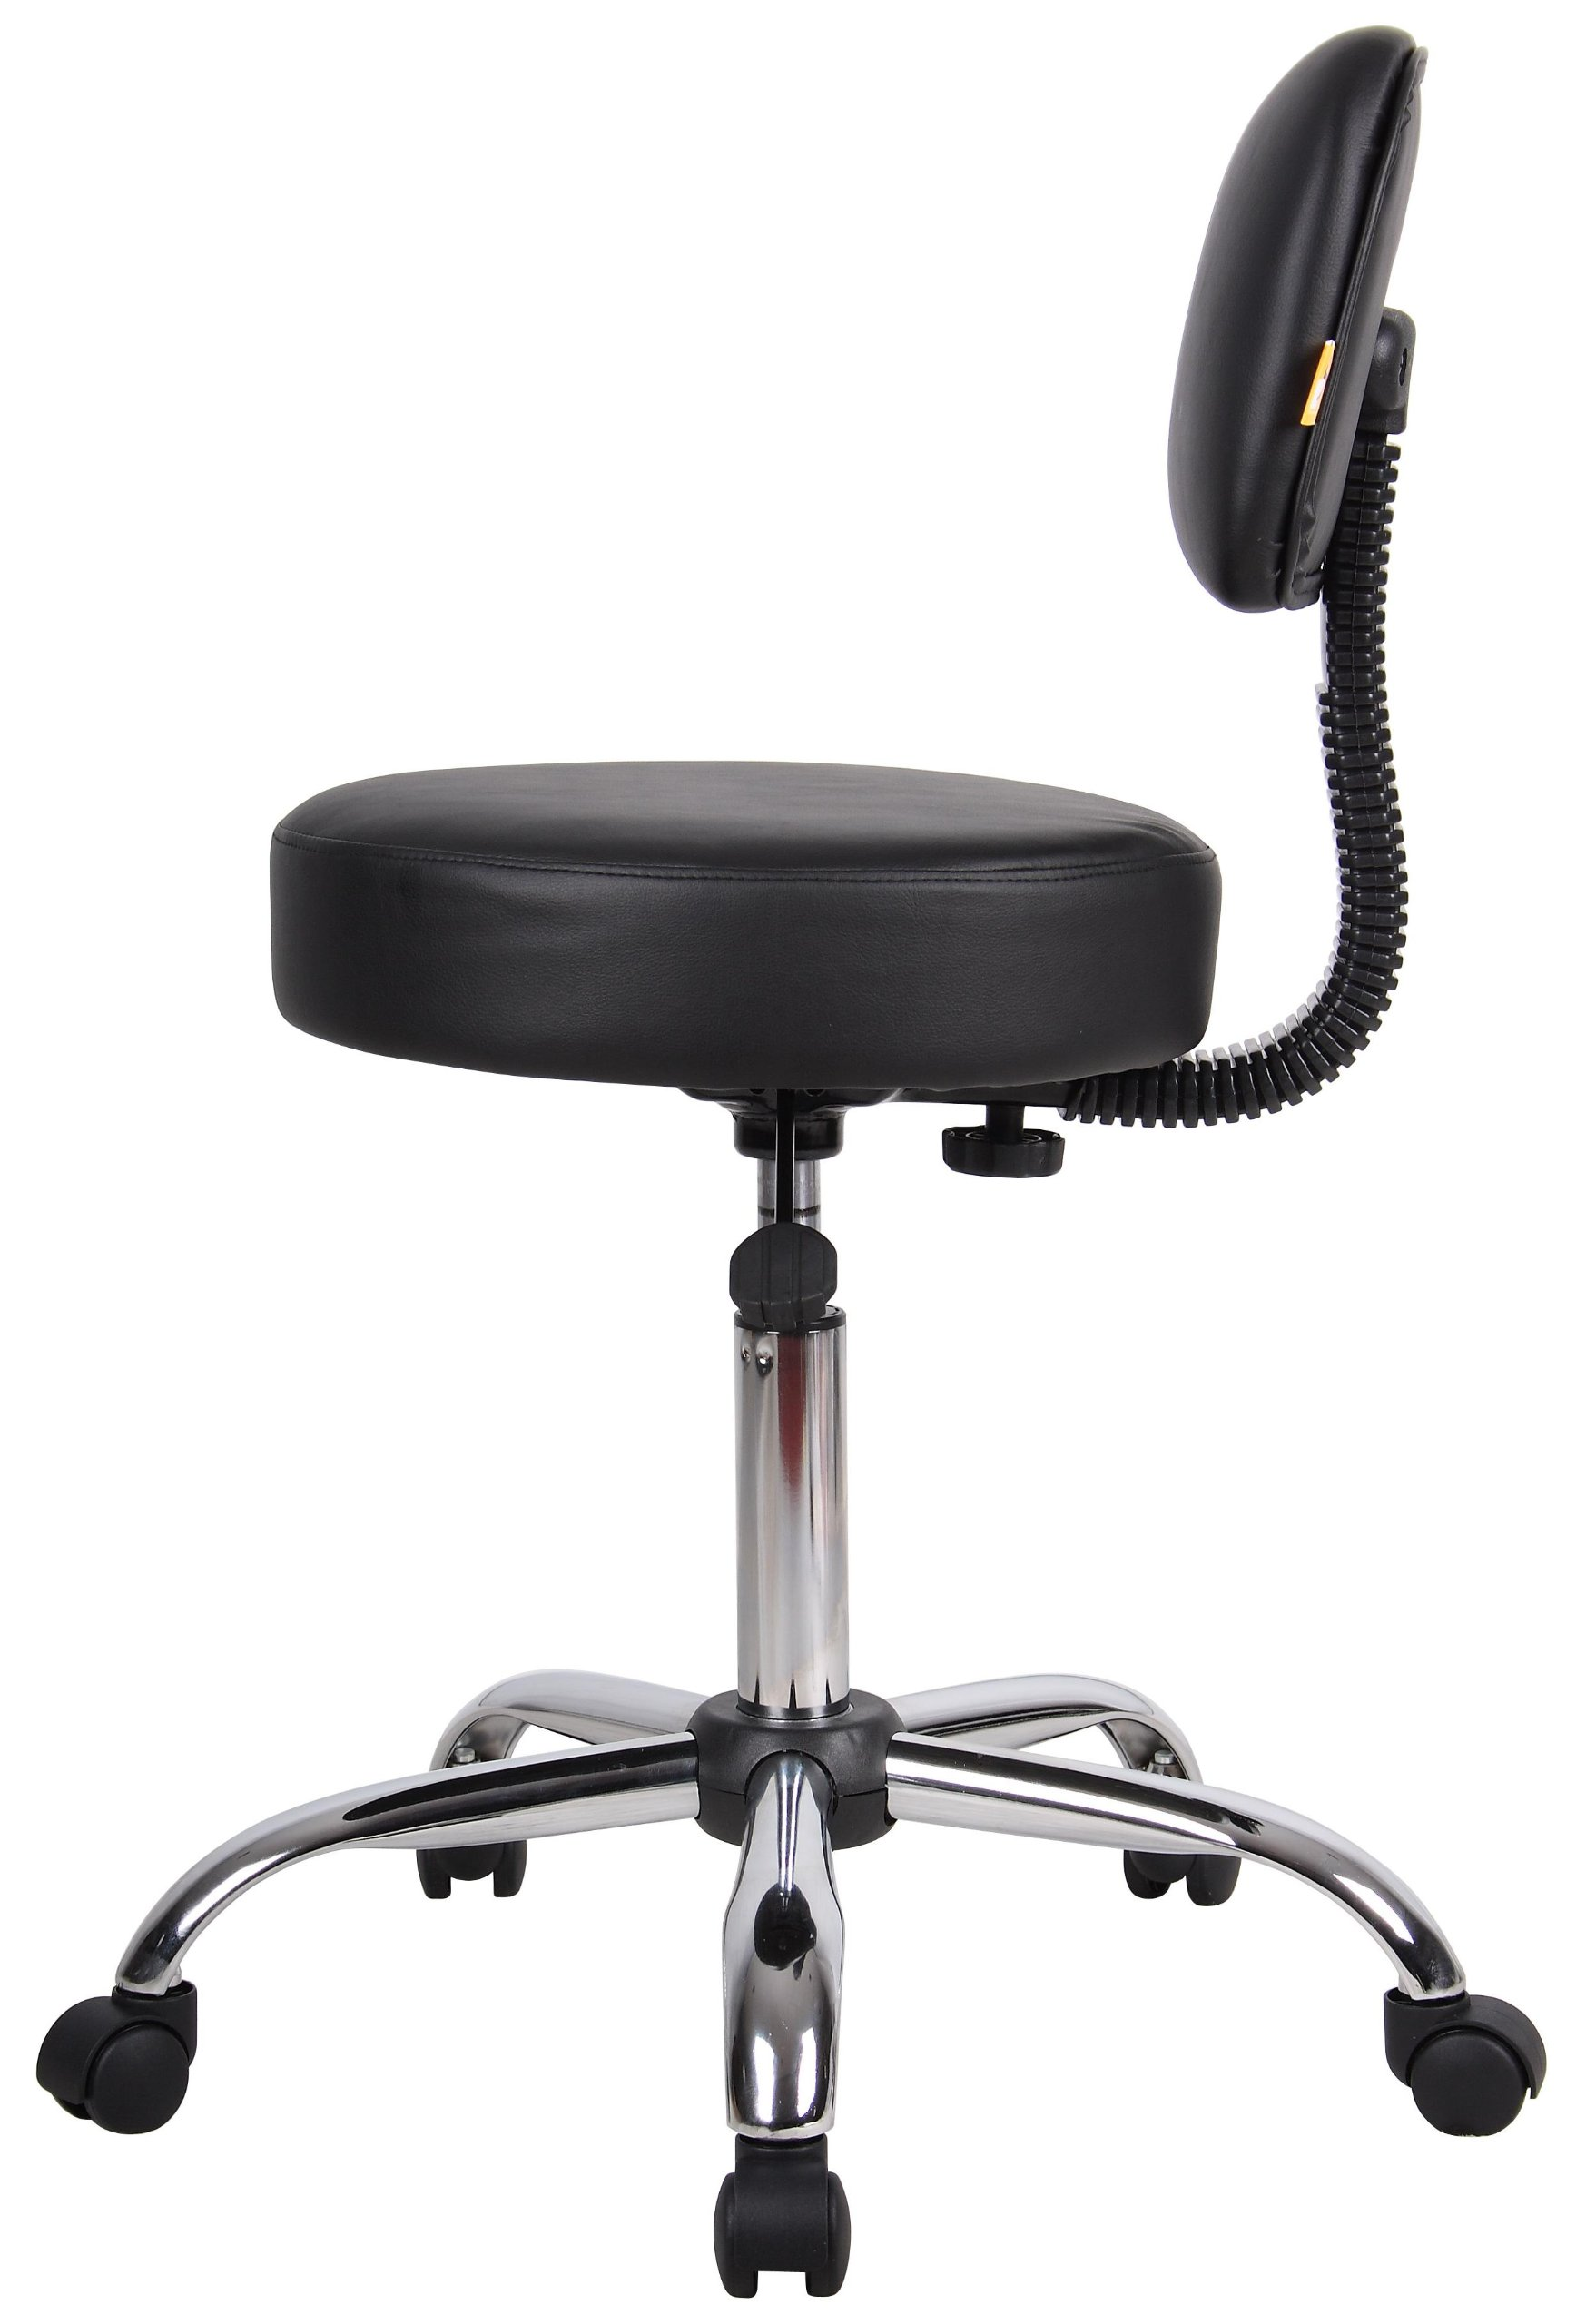 Boss Office Products B245-BK Be Well Medical Spa Stool with Back in Black by Boss Office Products (Image #4)